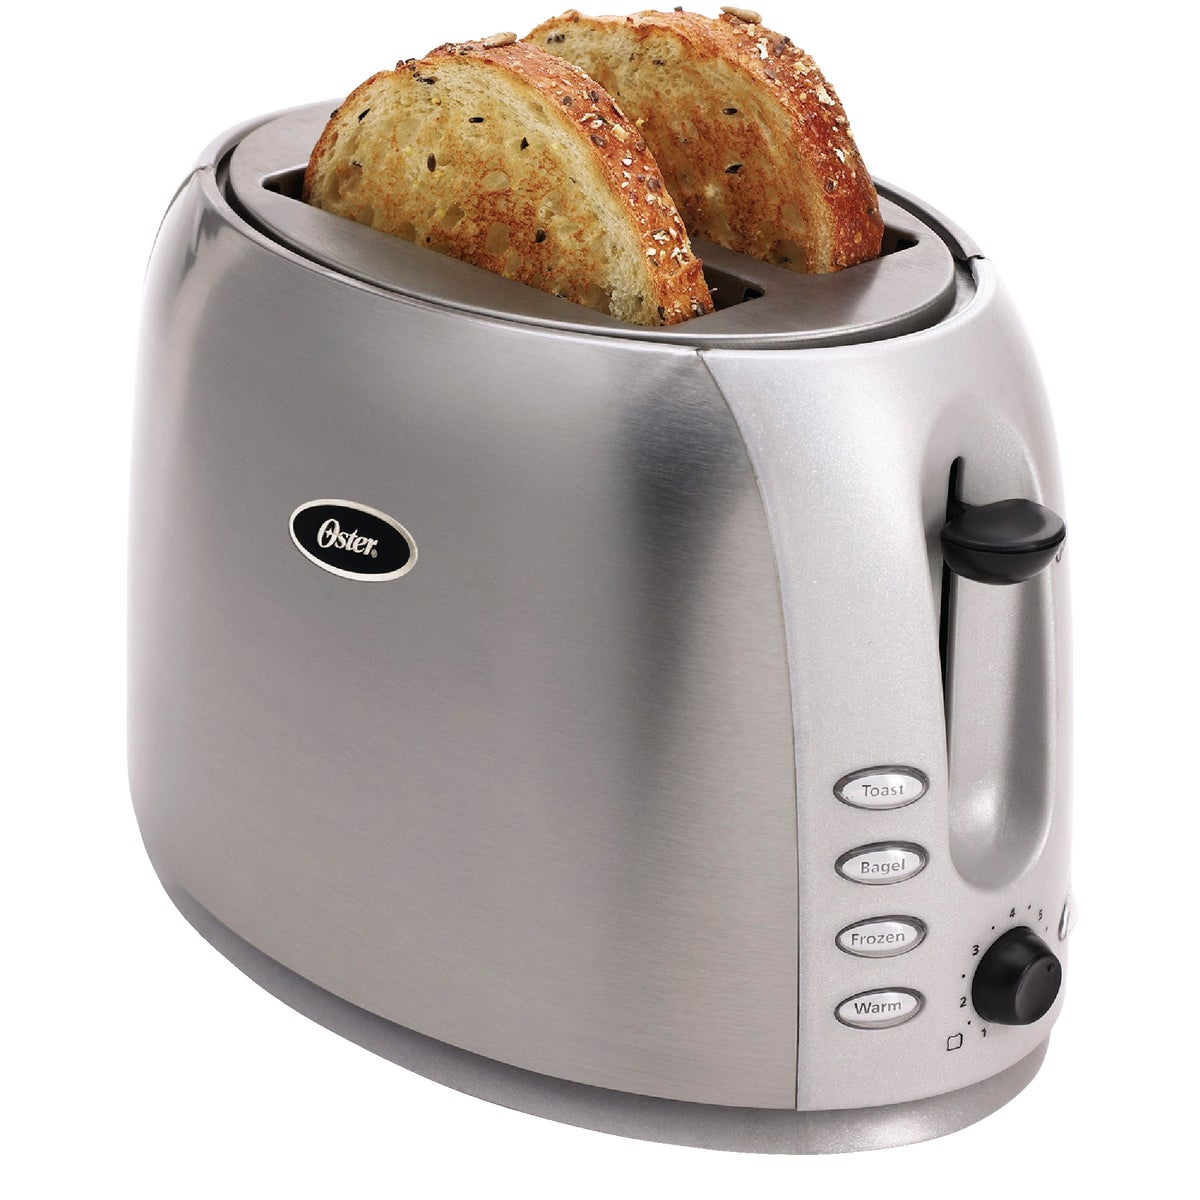 ST STL 2-SLICE TOASTER - 6594 by Jarden Cs